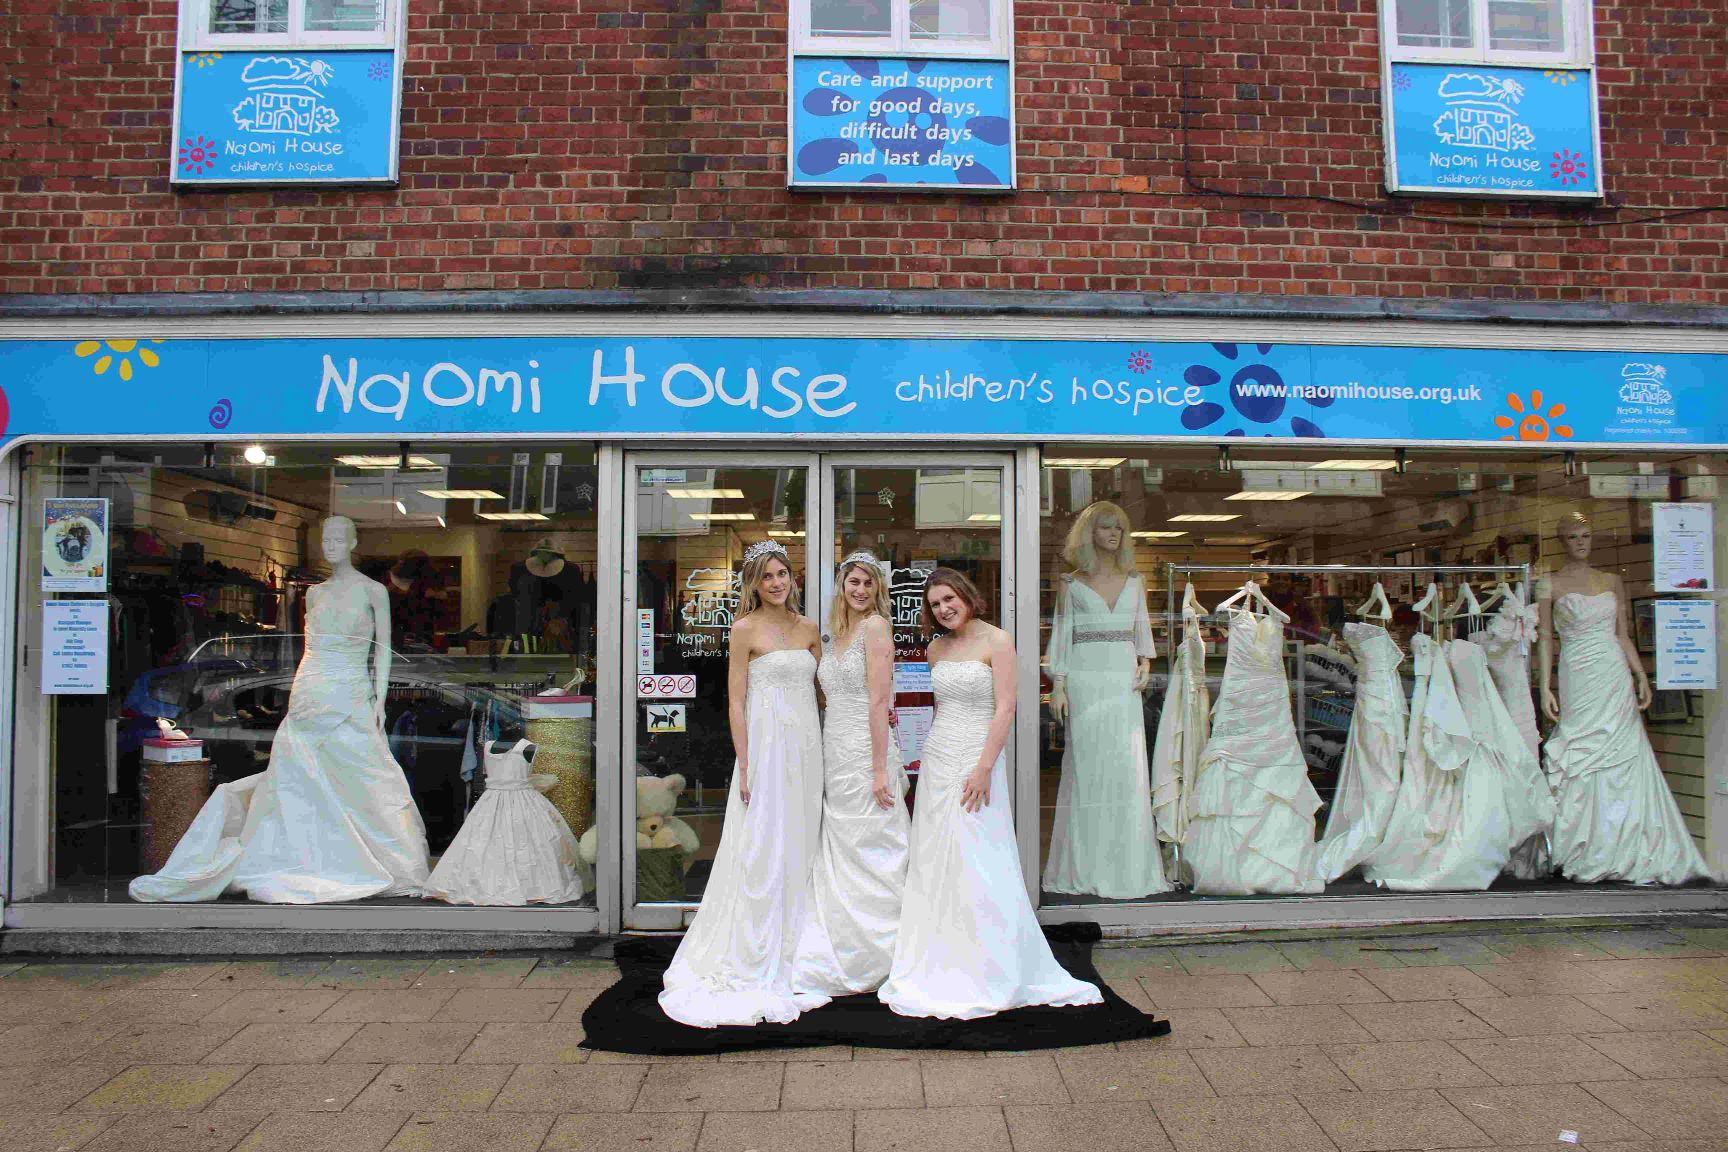 Wedding Dress Donation.Donation Of 35 Wedding Dresses Boosts Charity Shop Funds Daily Echo